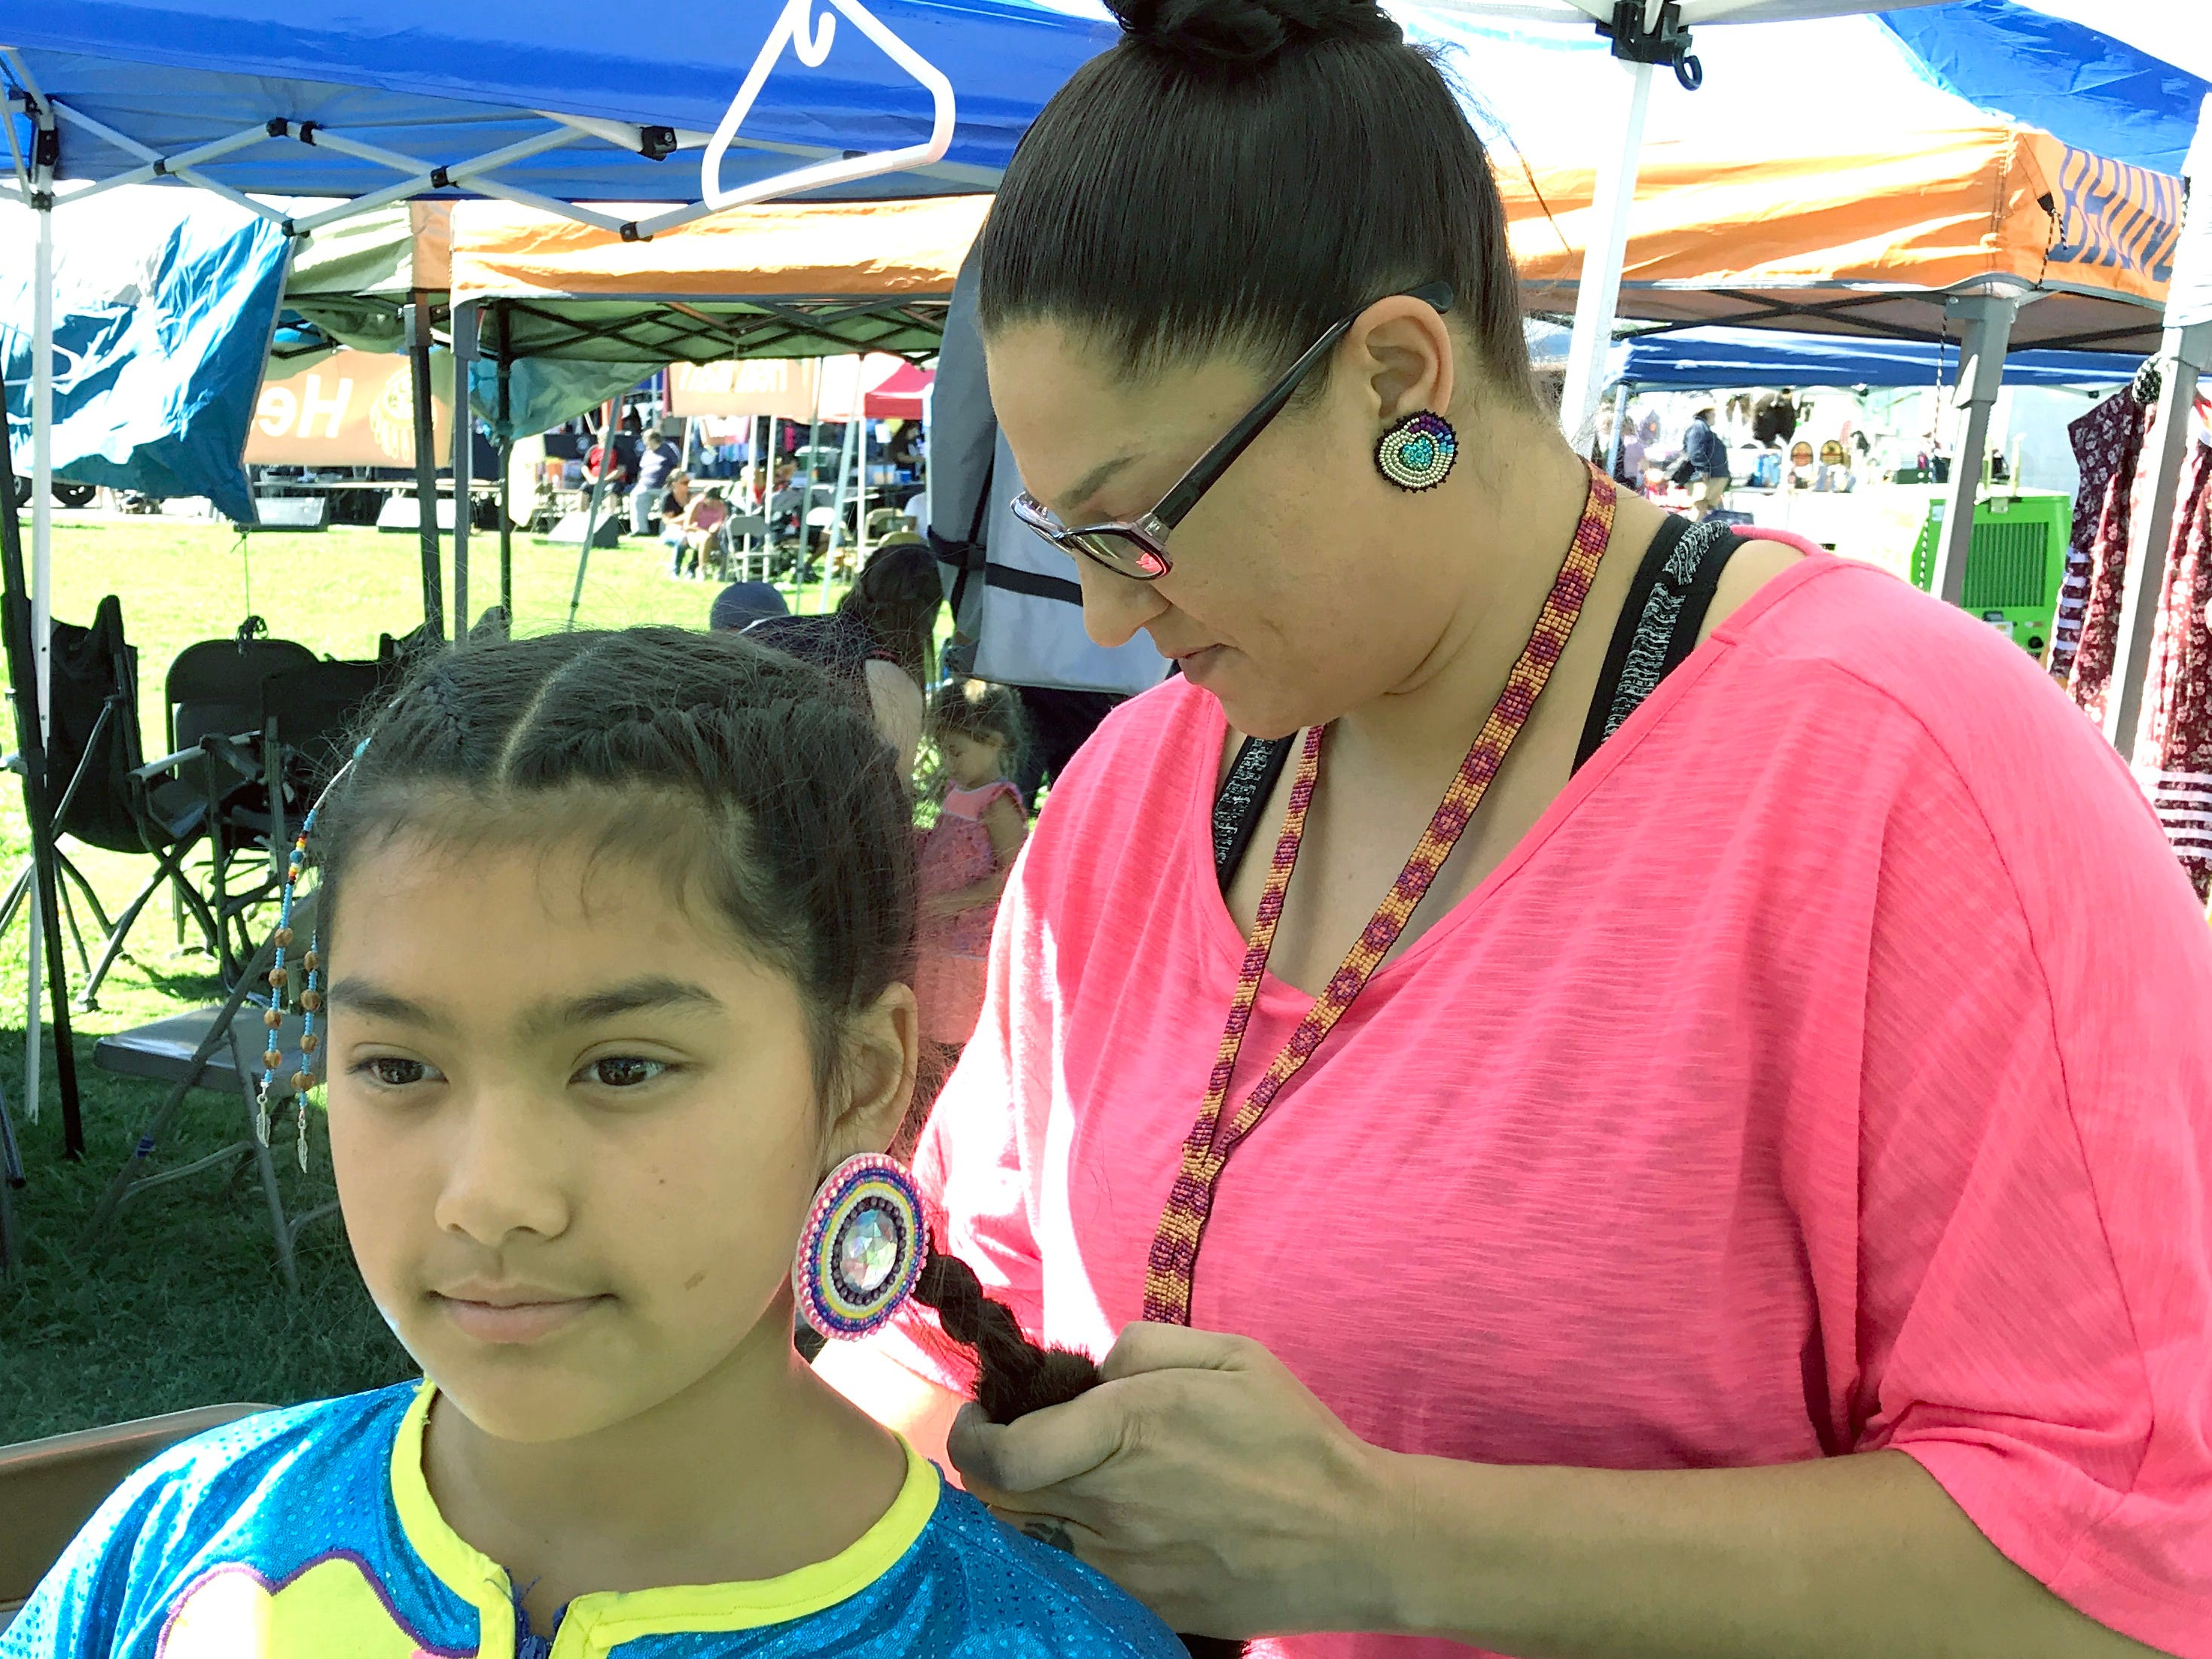 Patricia Riggins from Anderson, of Pit River and Wintu tribal heritage, does the hair of 11-year-old Dayjah Vue at the 2018 Stillwater Powwow at the Anderson fairgrounds. Dayjah is a jingle dress dancer.